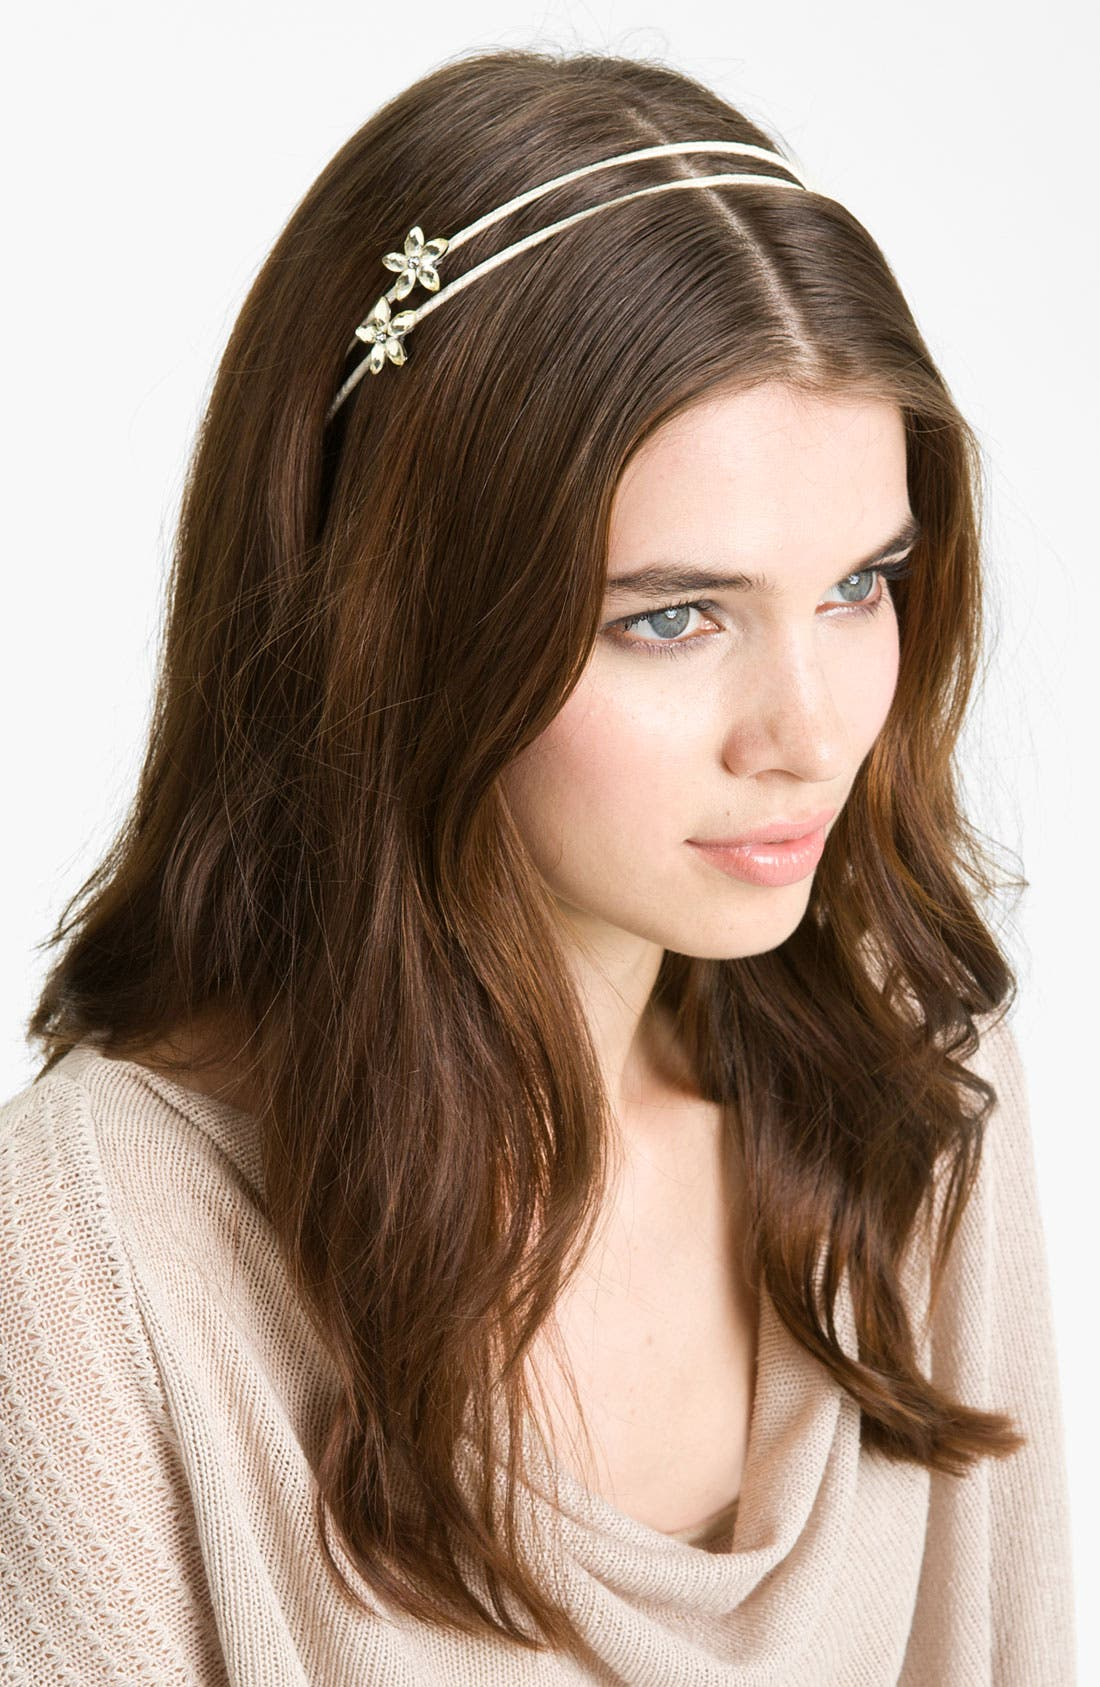 Alternate Image 1 Selected - Tasha 'Dainty Flowers' Headband